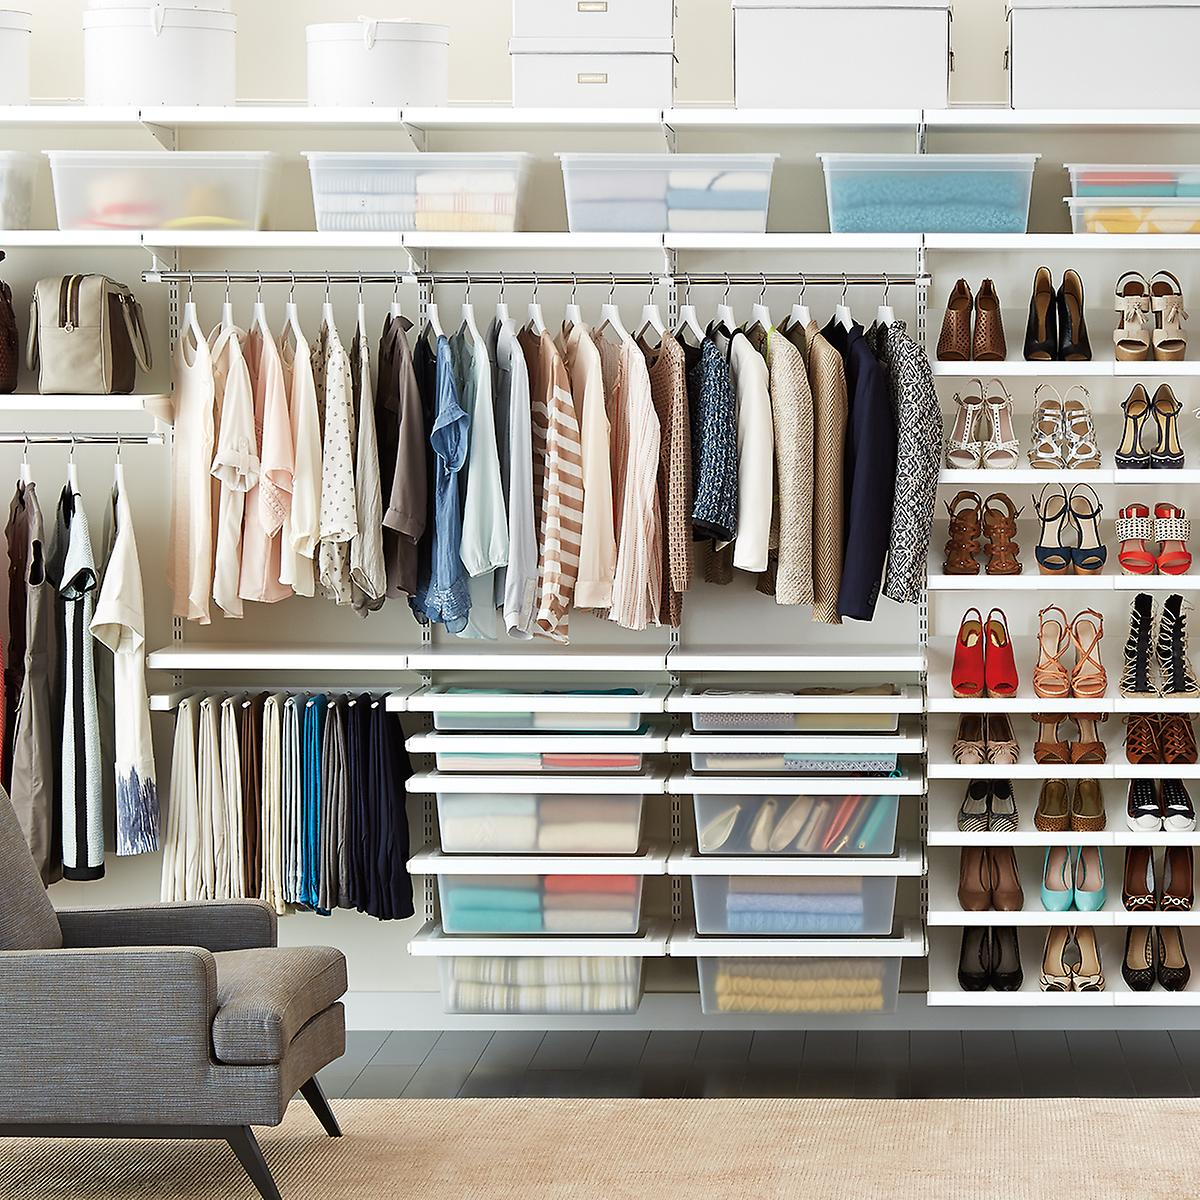 The 5 Stages Of Cleaning Out Your Closet